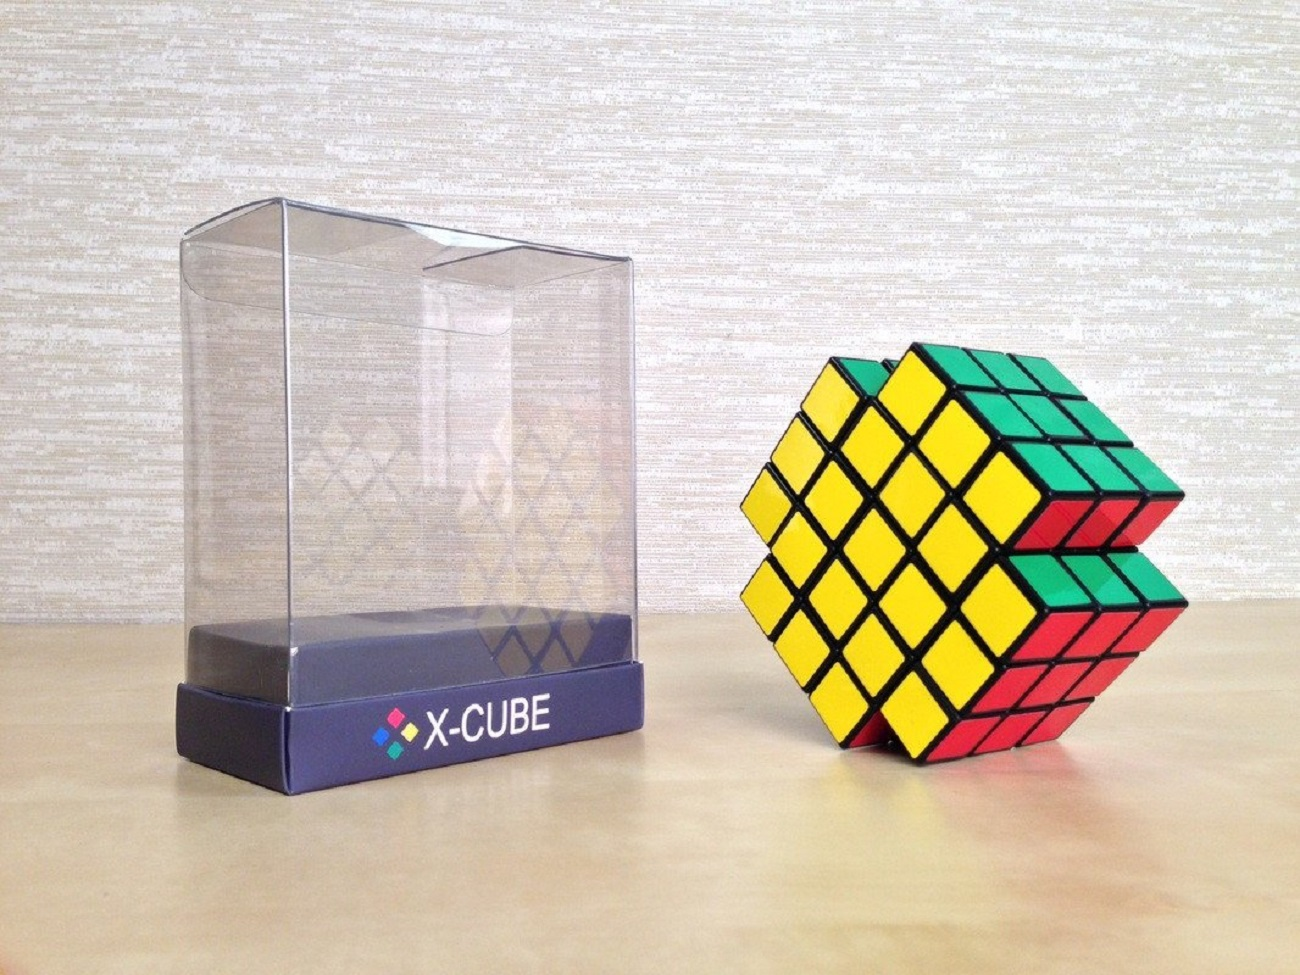 The+X+Cube